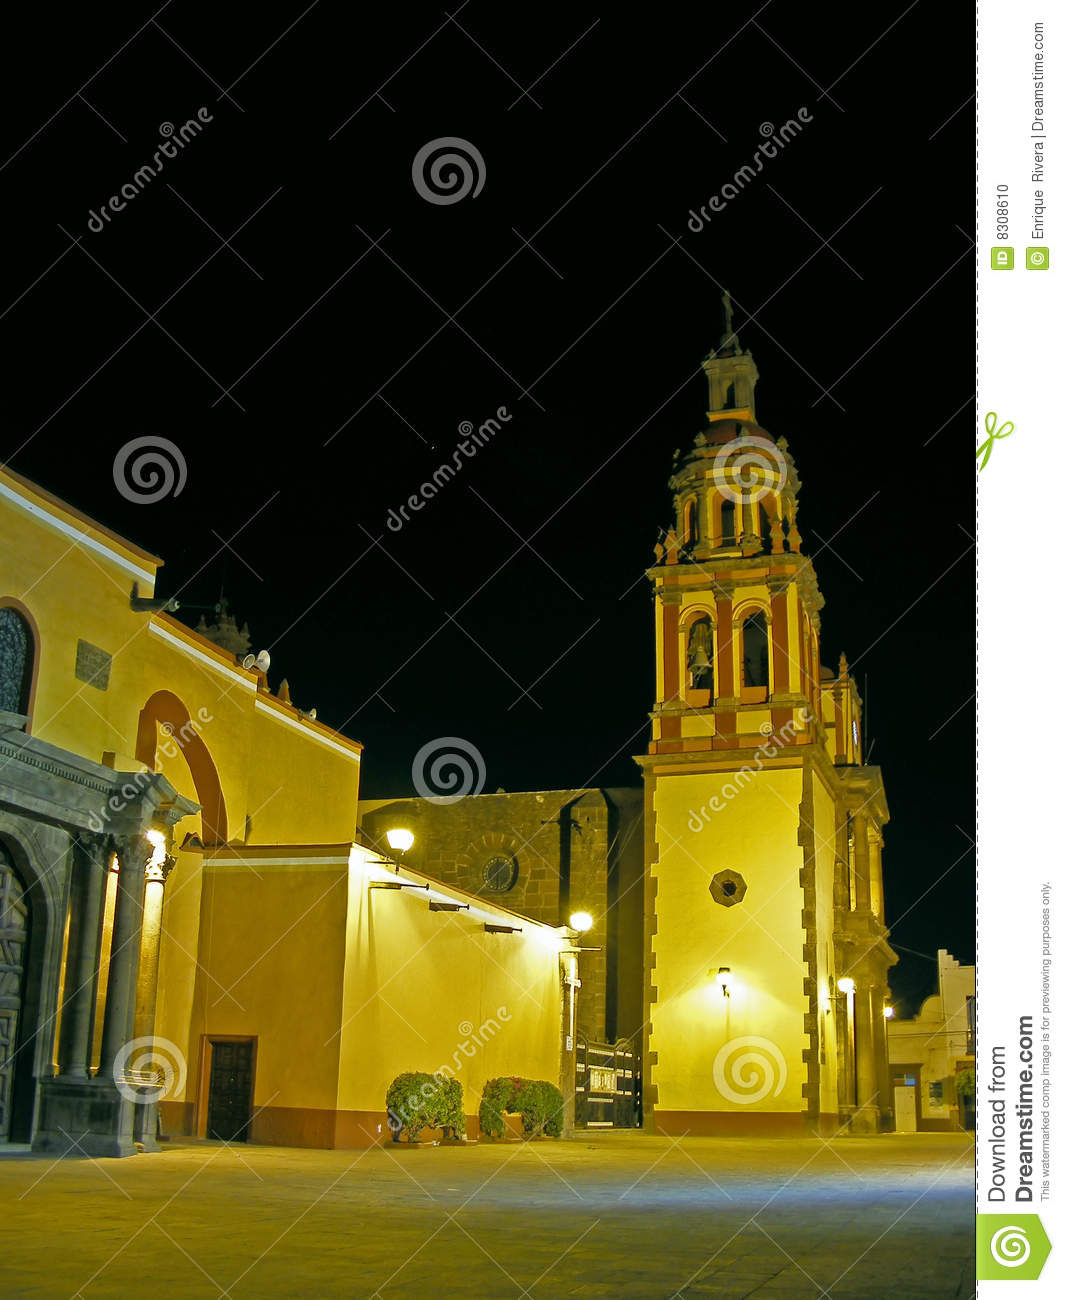 18th century church night view